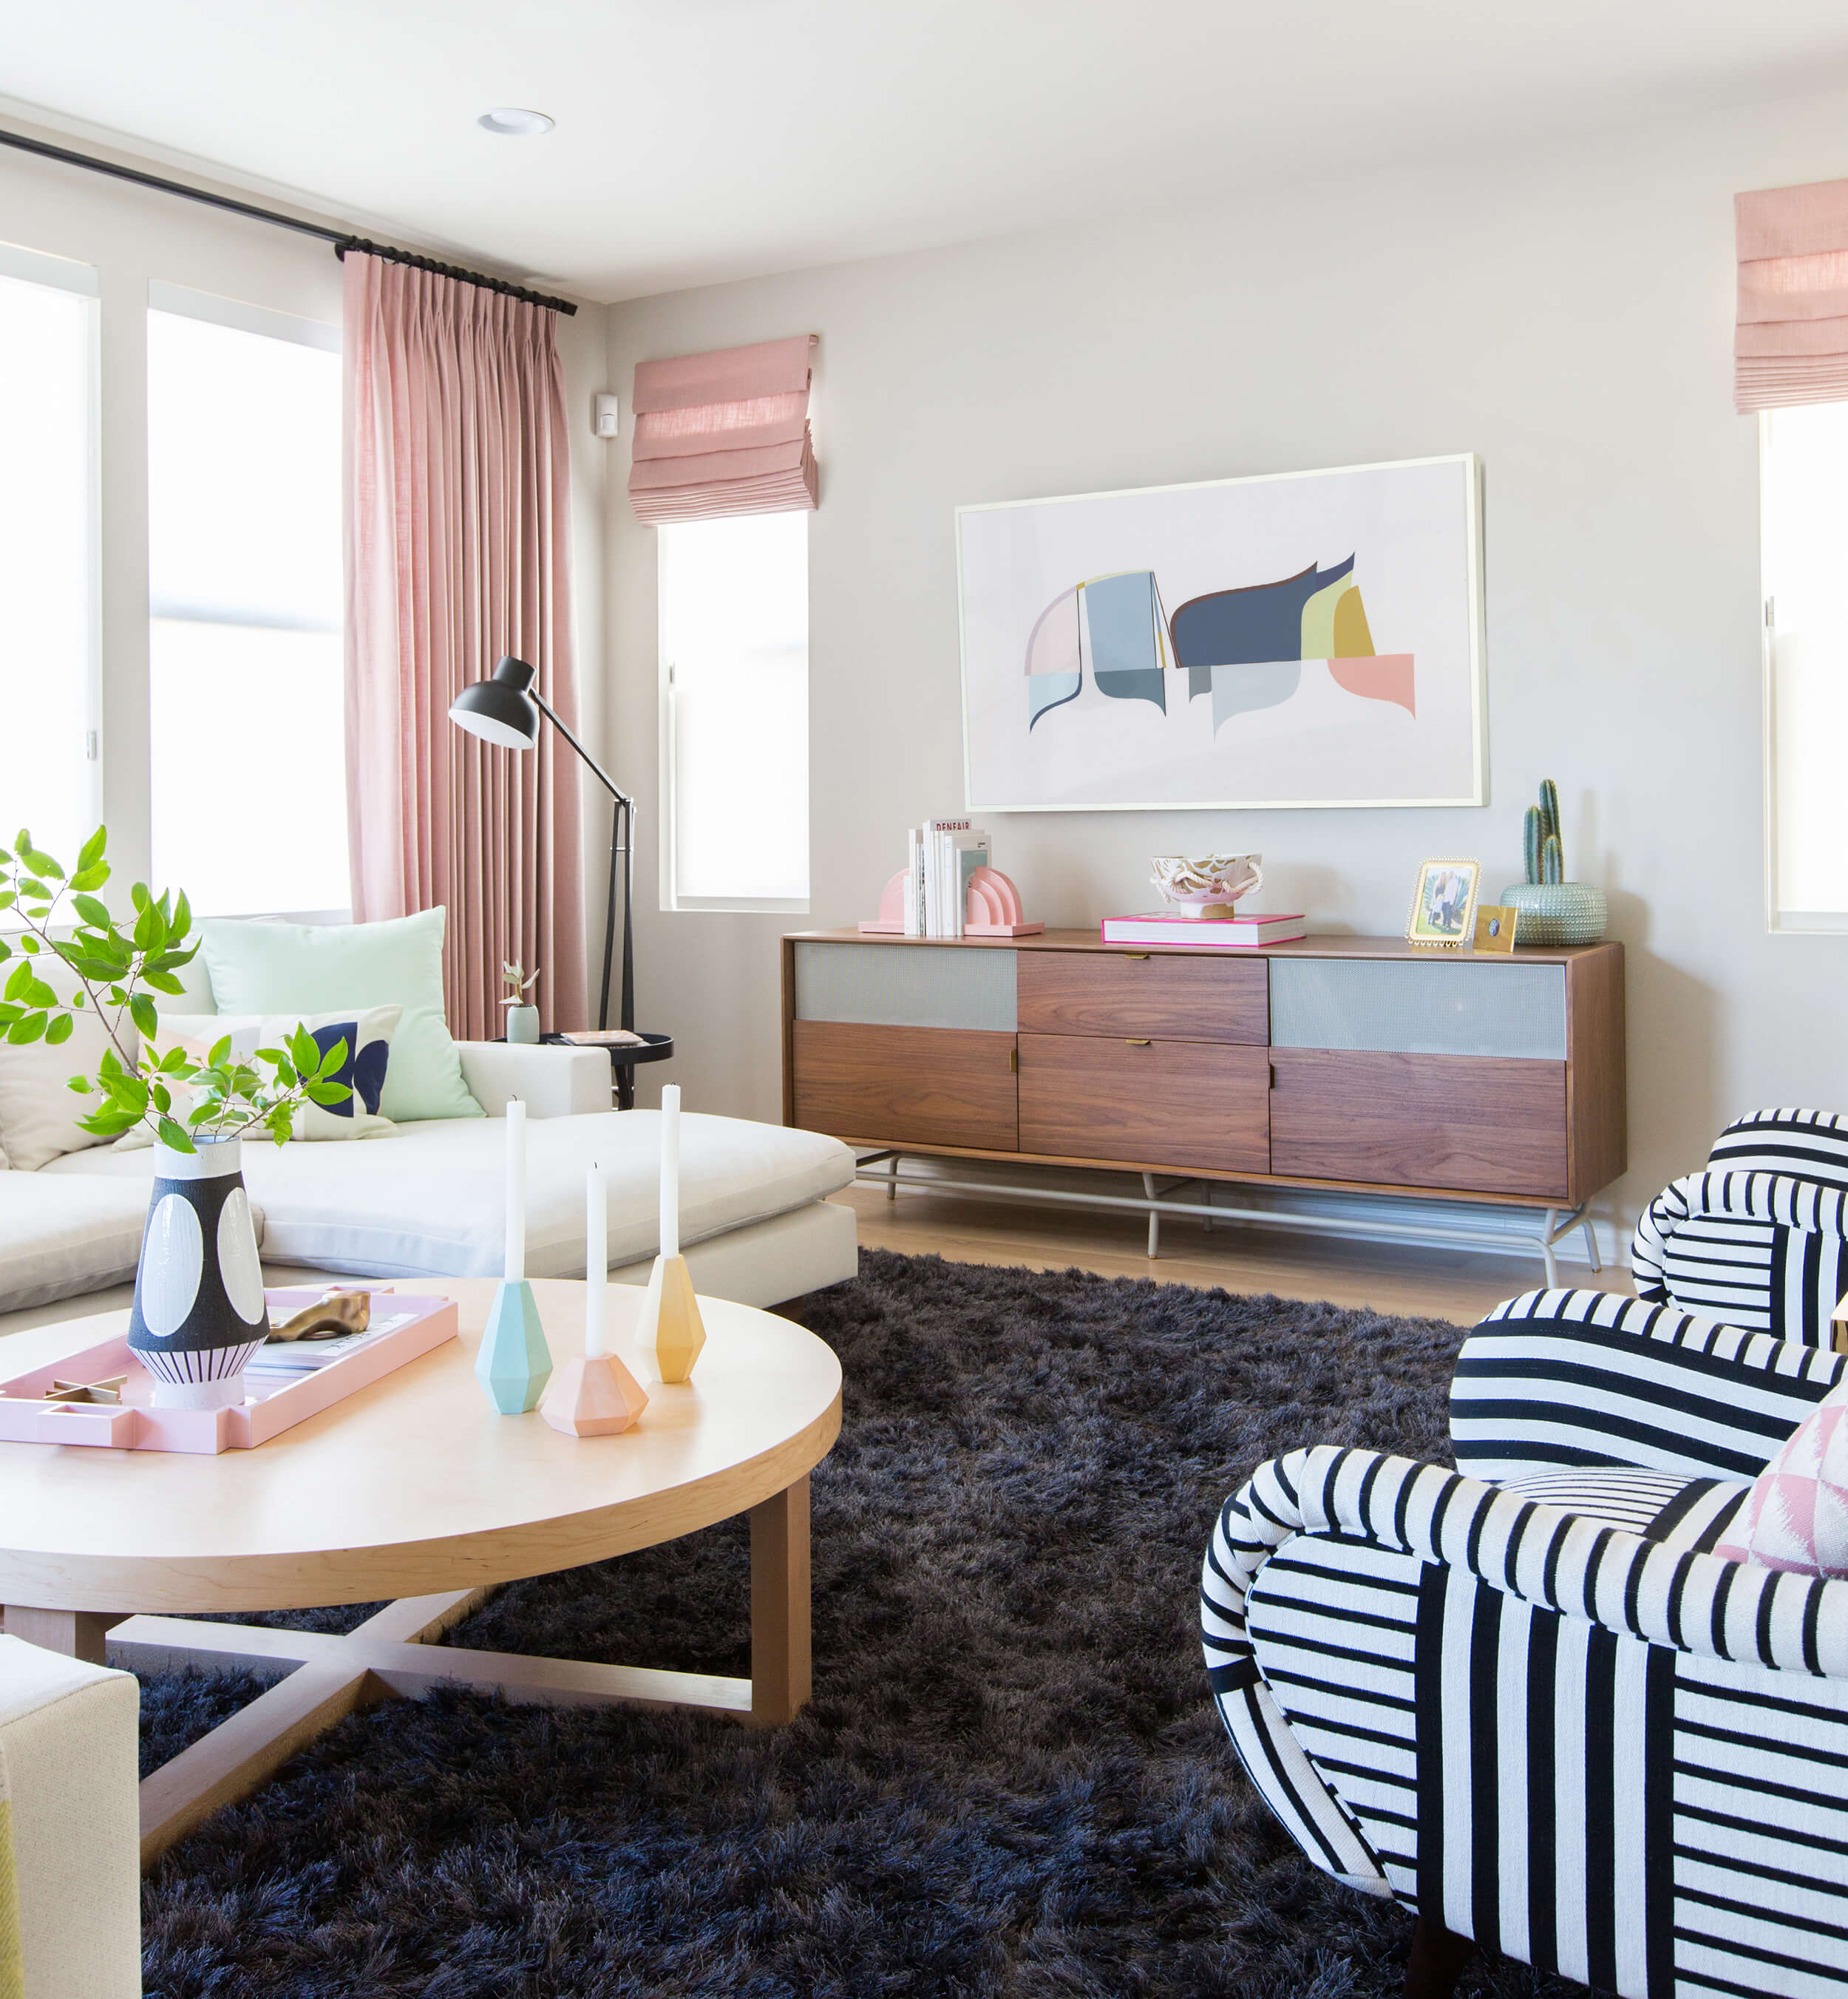 how coffee table for every space emily henderson design milk modern pink black and white jaimie derringer living room reveal with frame cropped end placement accents console ikea